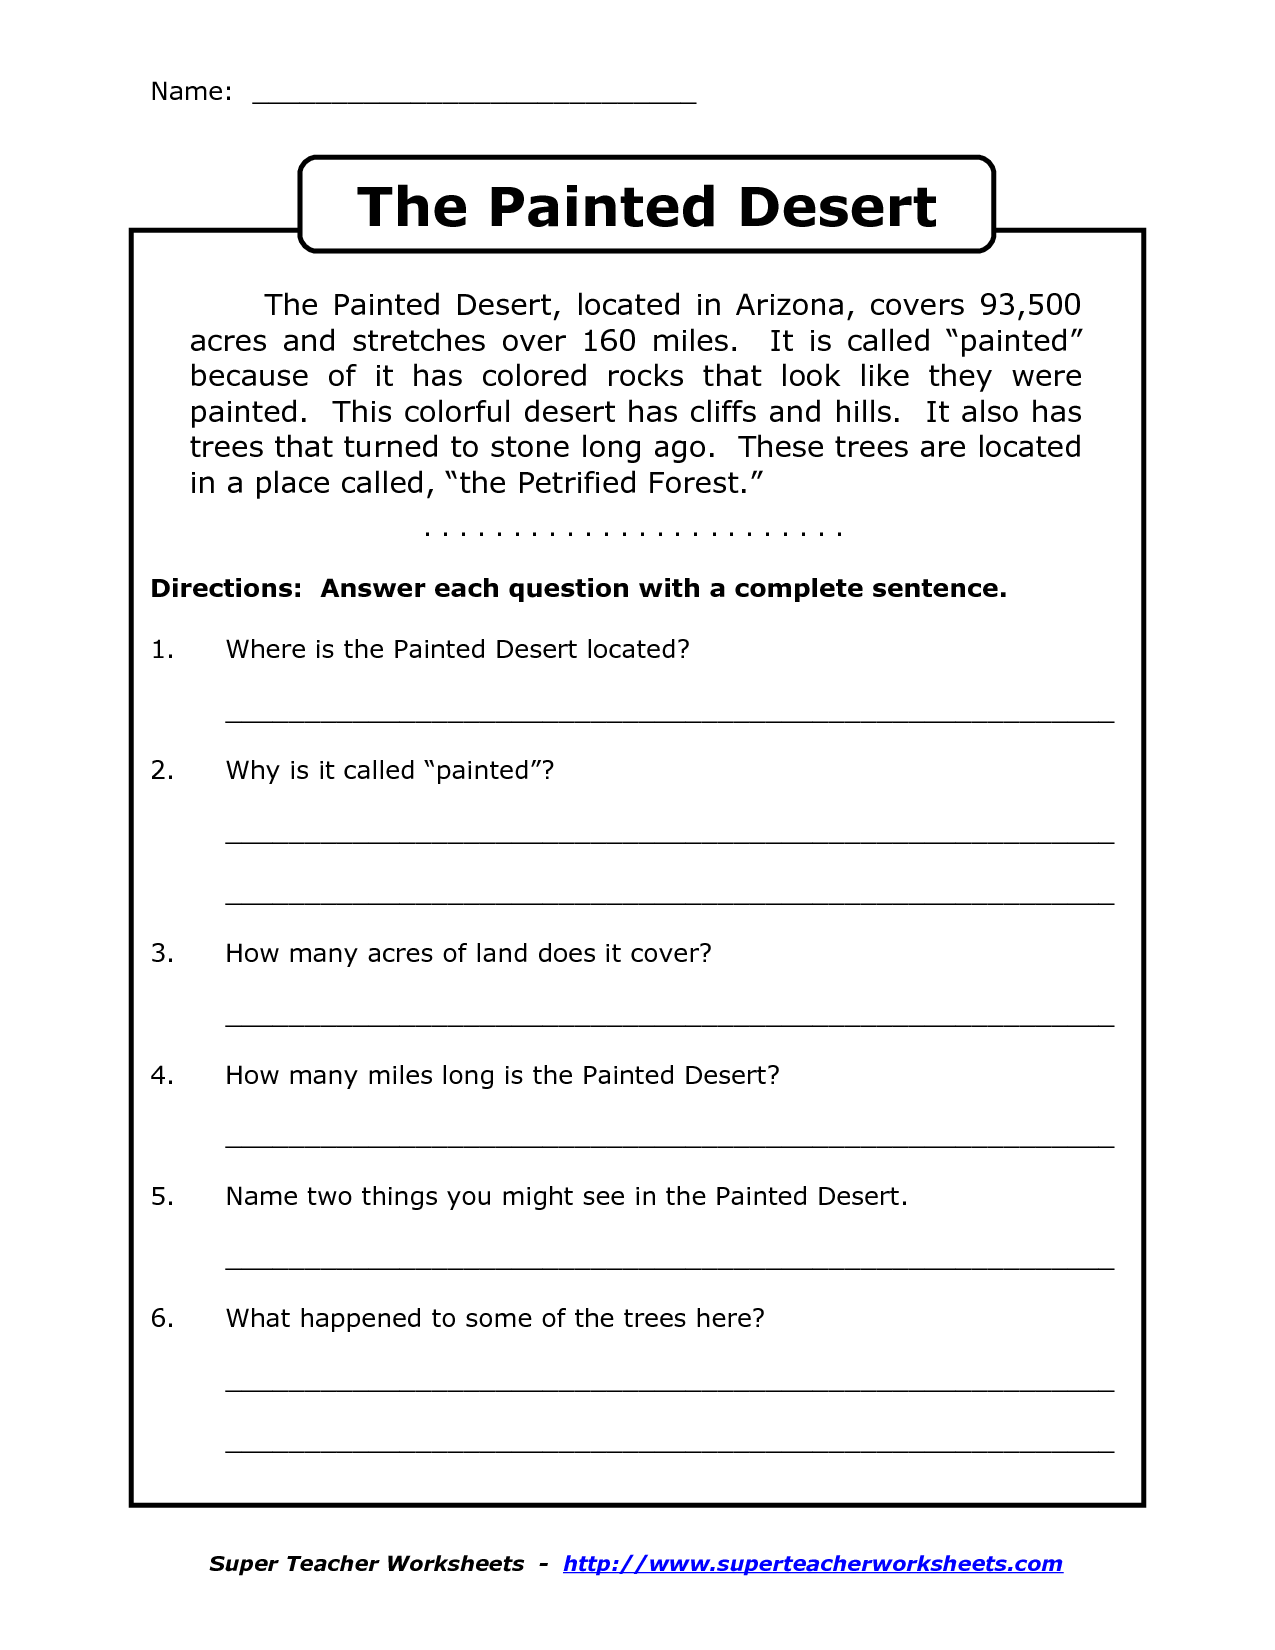 Worksheets 7th Grade Reading Worksheets enrichment language worksheets google search 4th grade readingreading